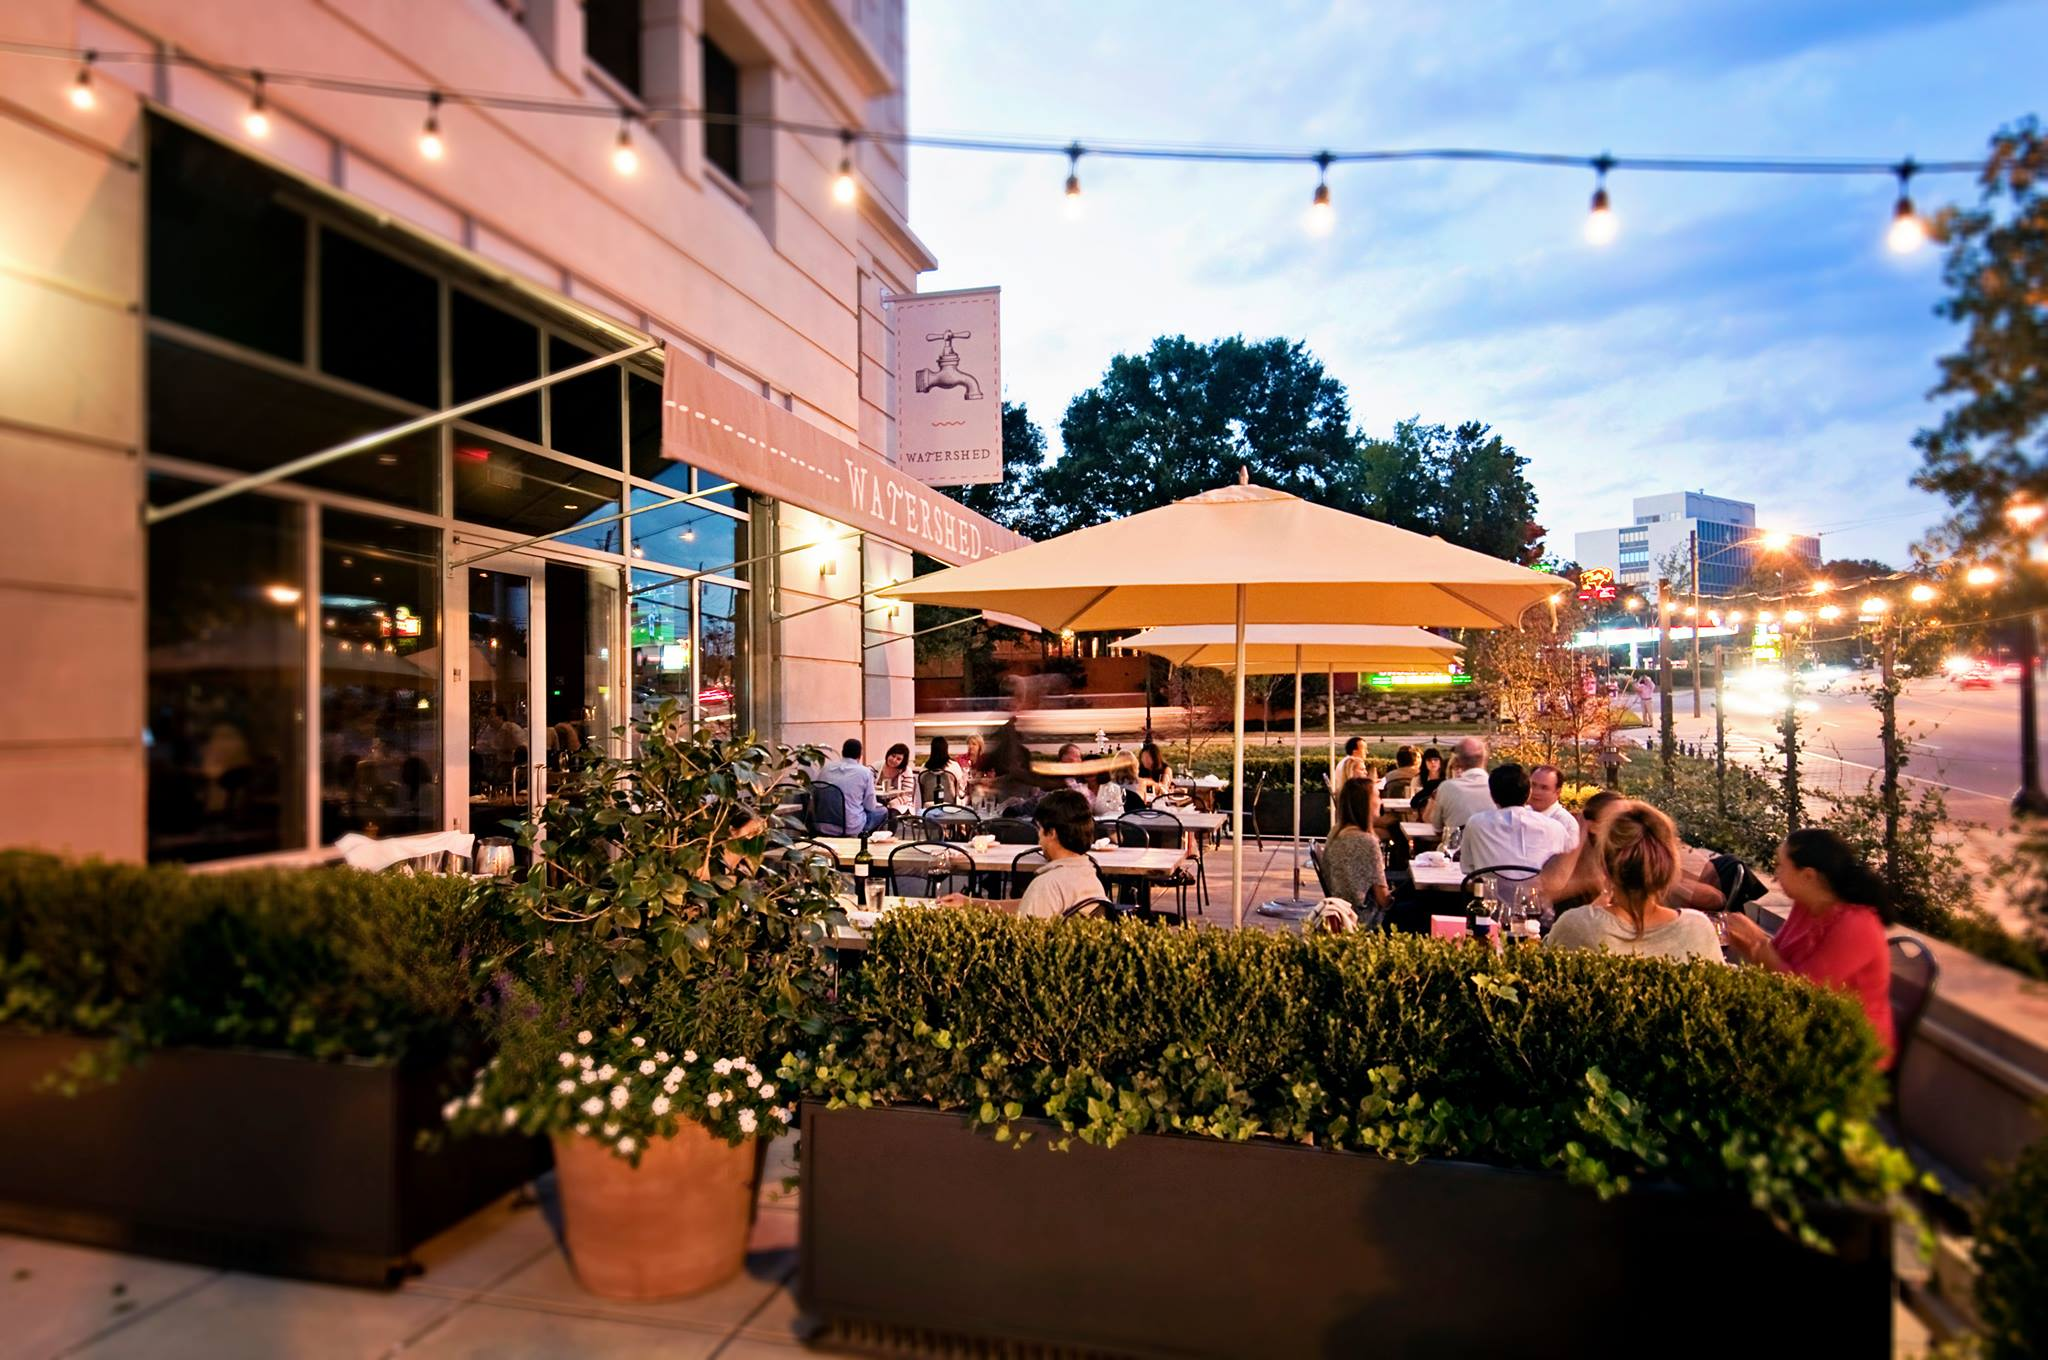 The Patio At The Watershed.